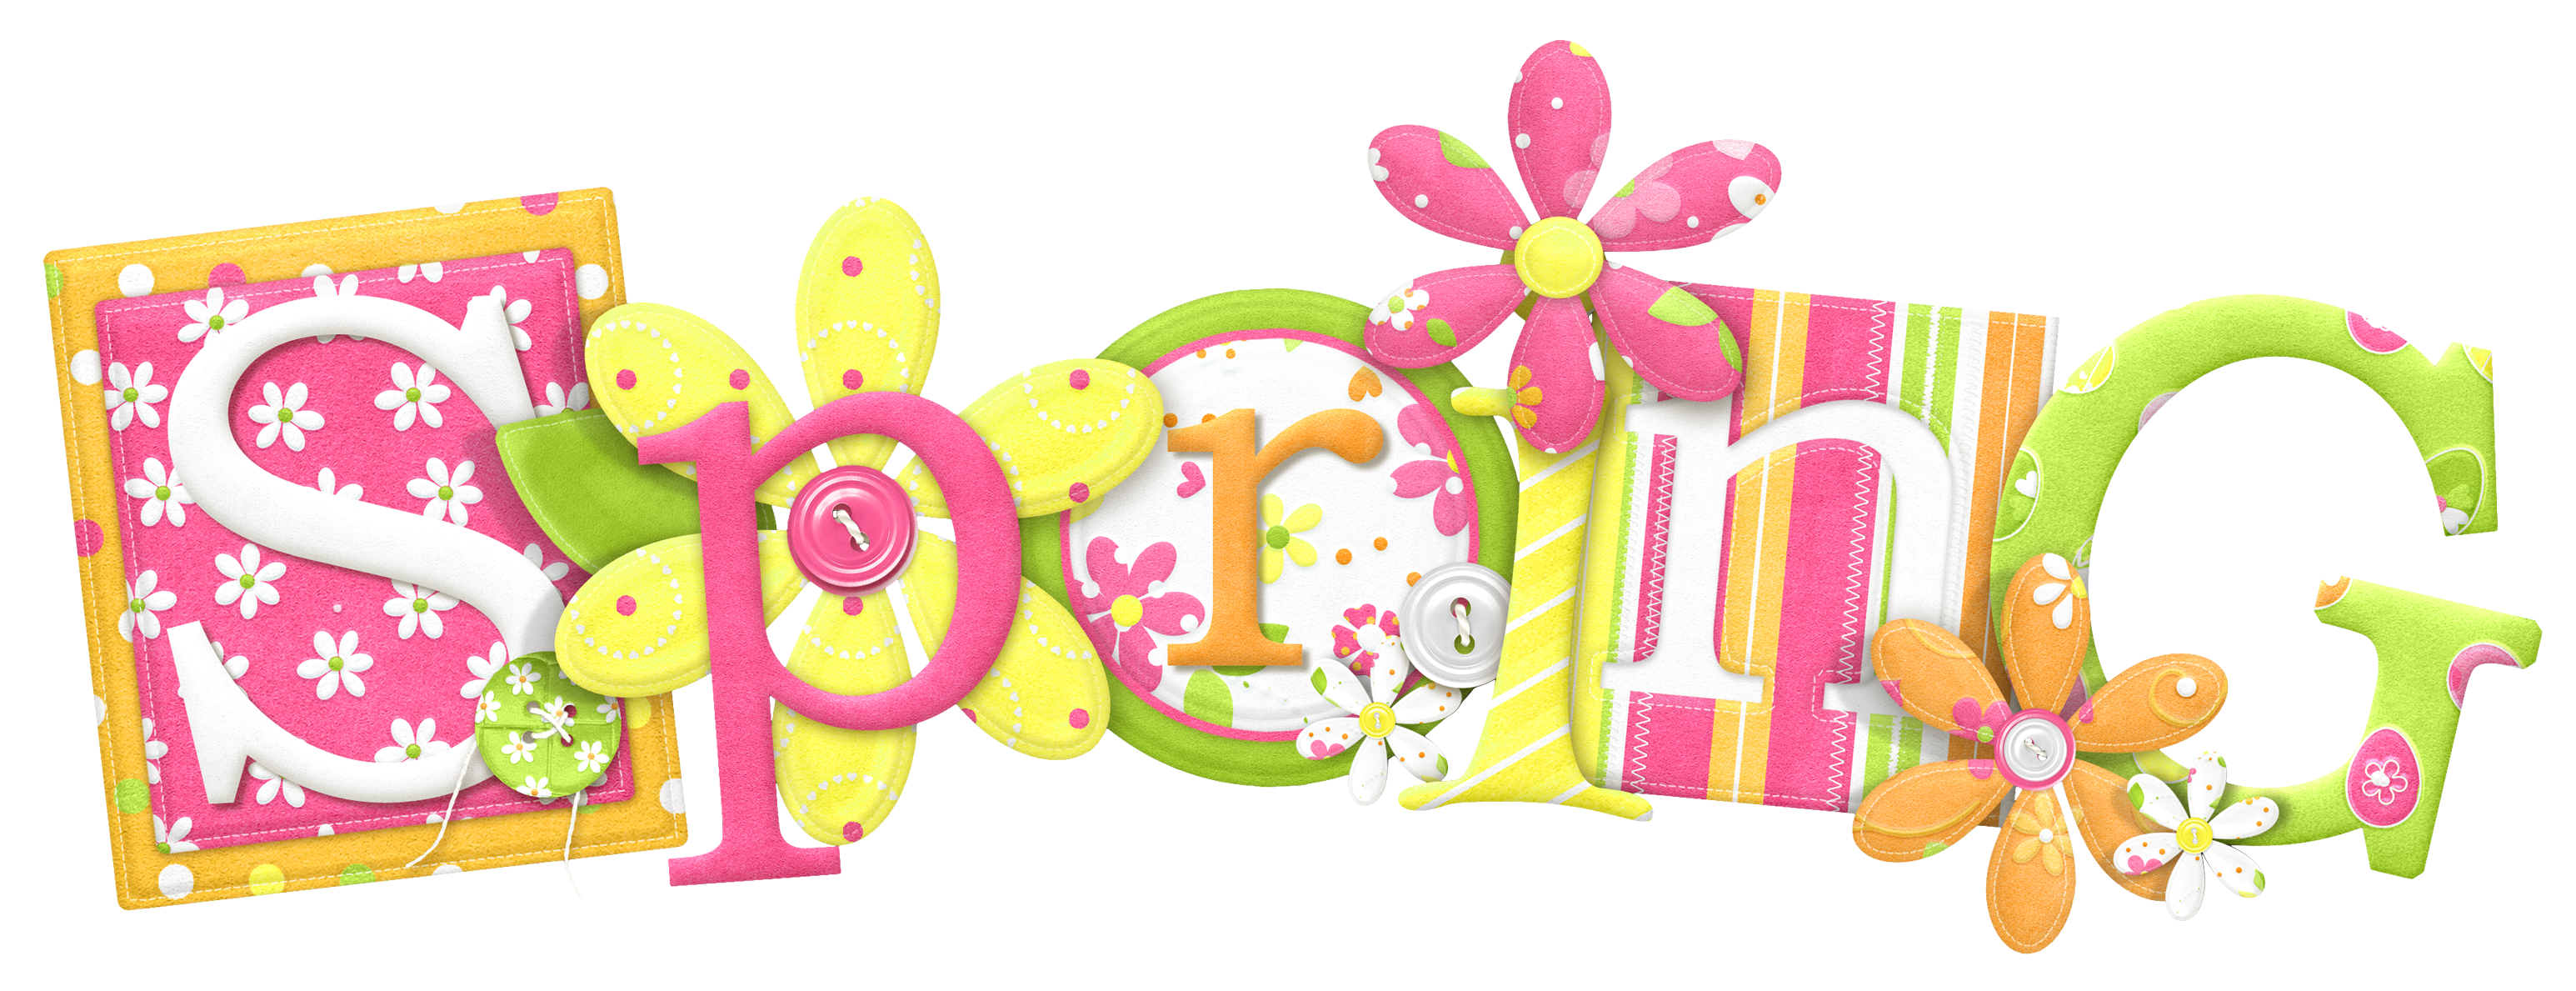 Spring png. Clipart picture gallery yopriceville